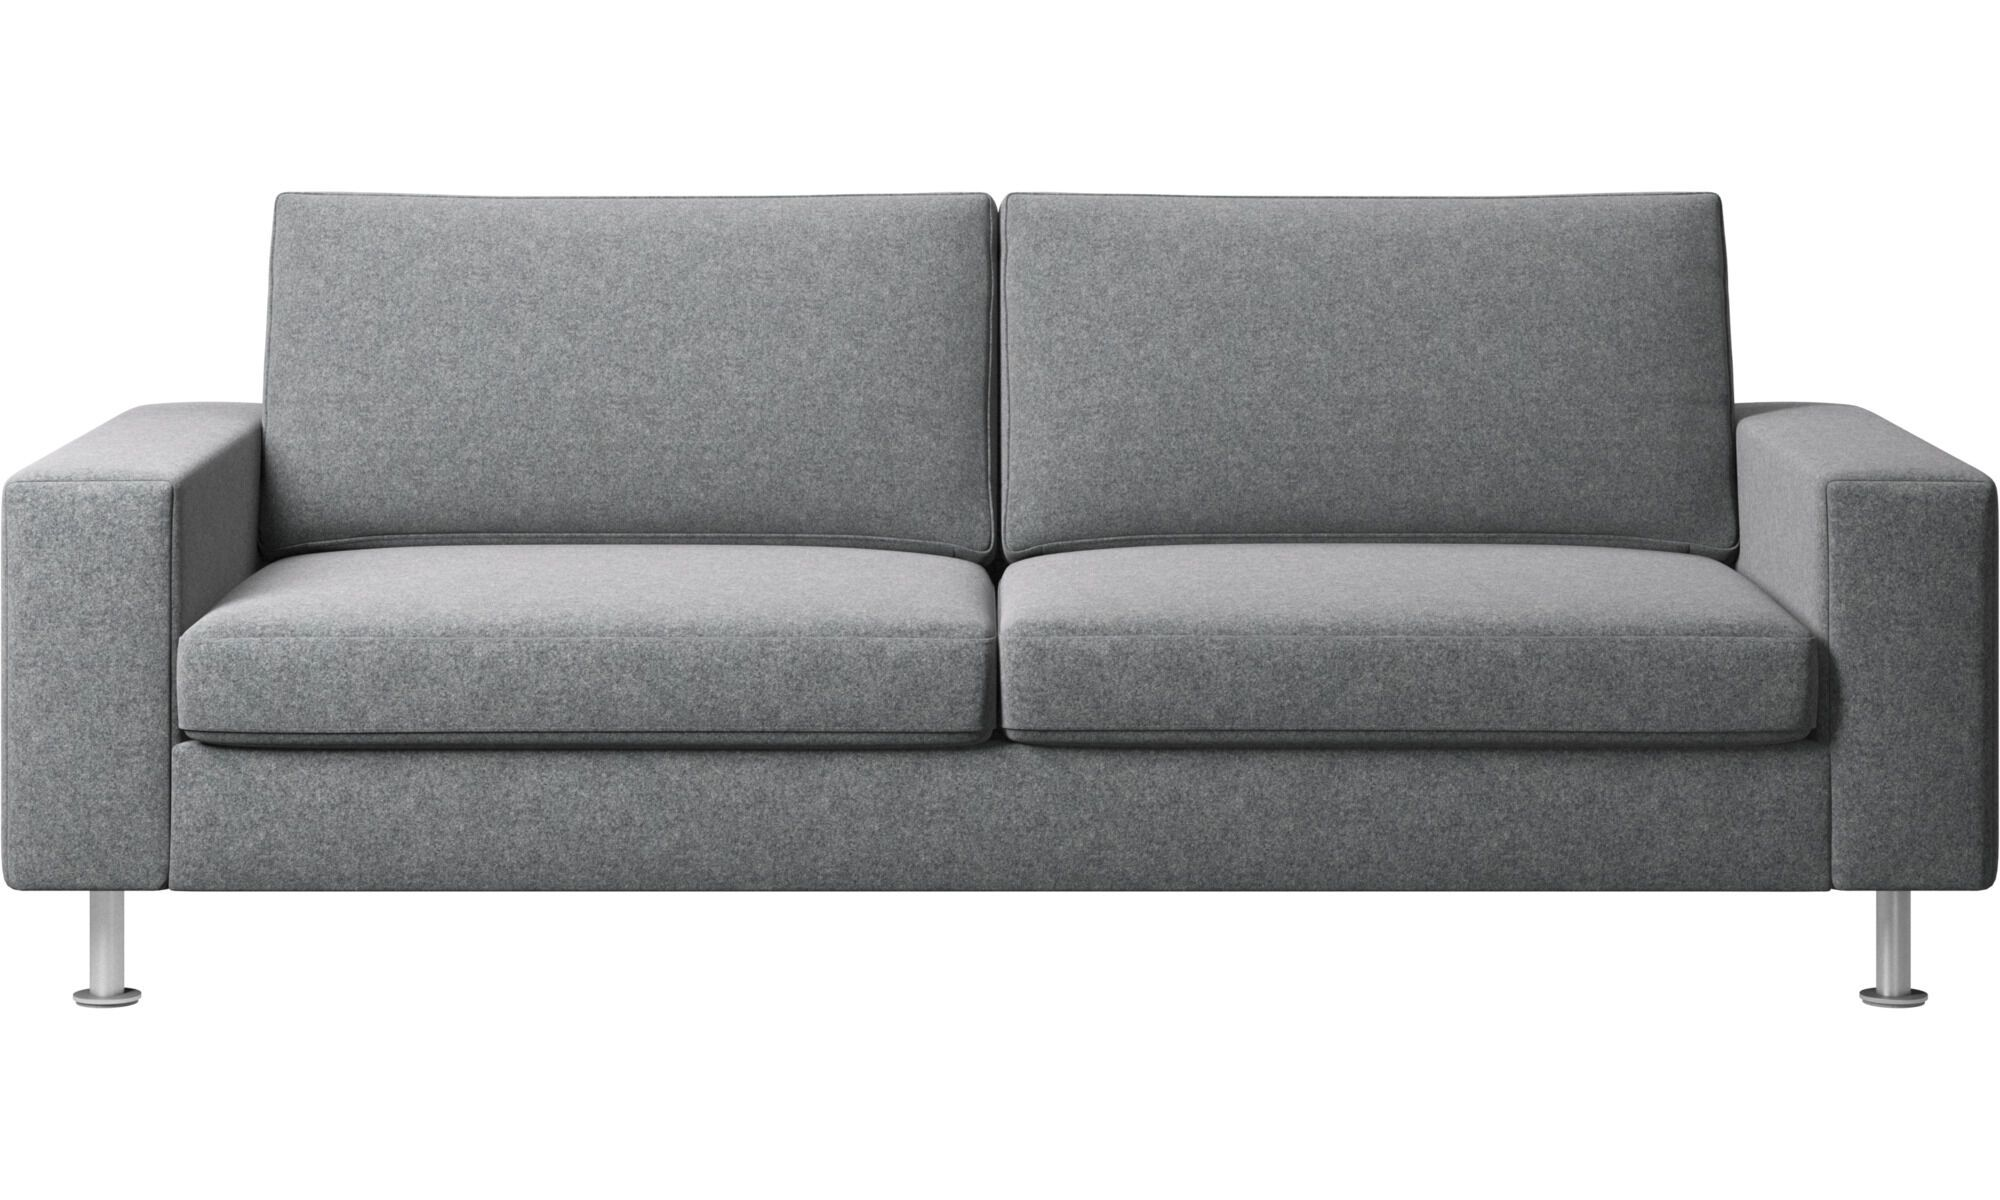 Sofa Beds Indivi Sofa Bed In 2020 Sofa Sofa Pictures Sofa Bed